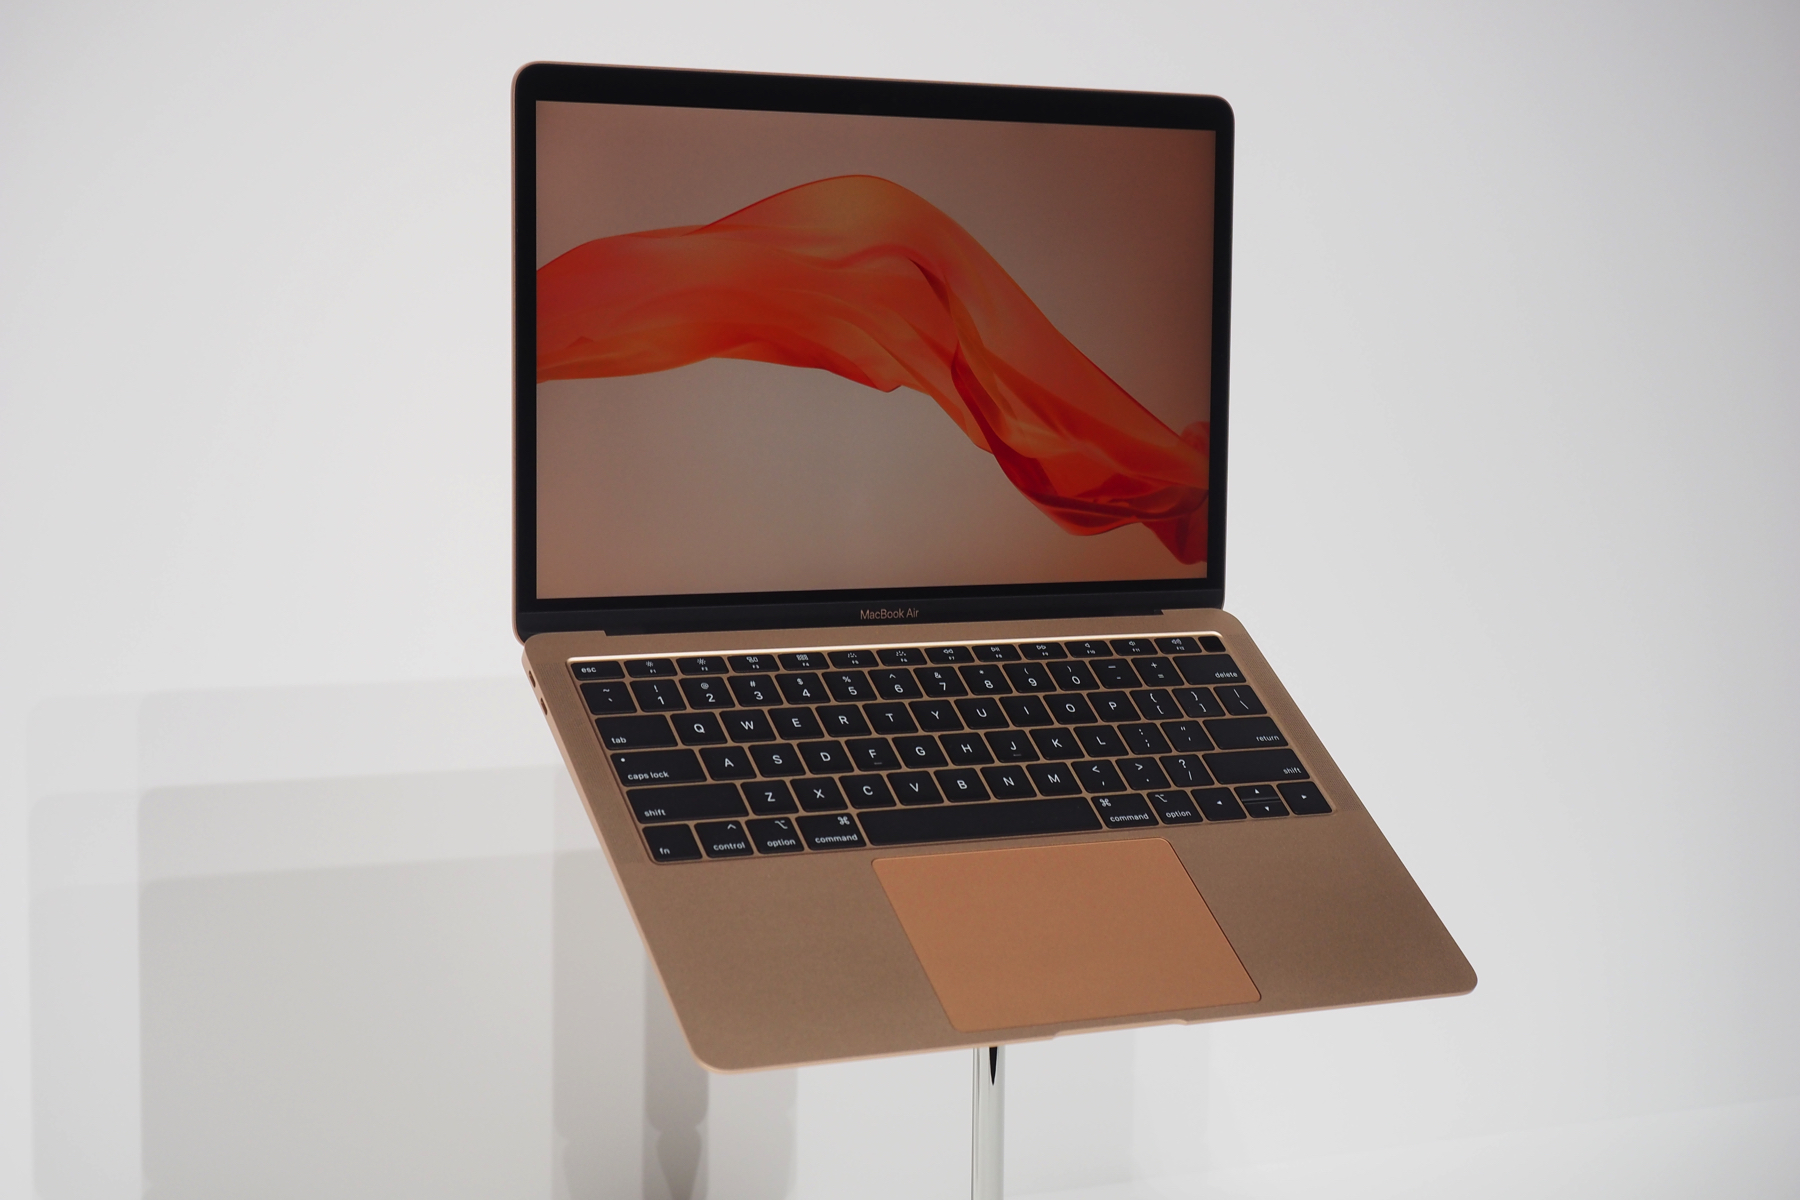 MacBook Air mới